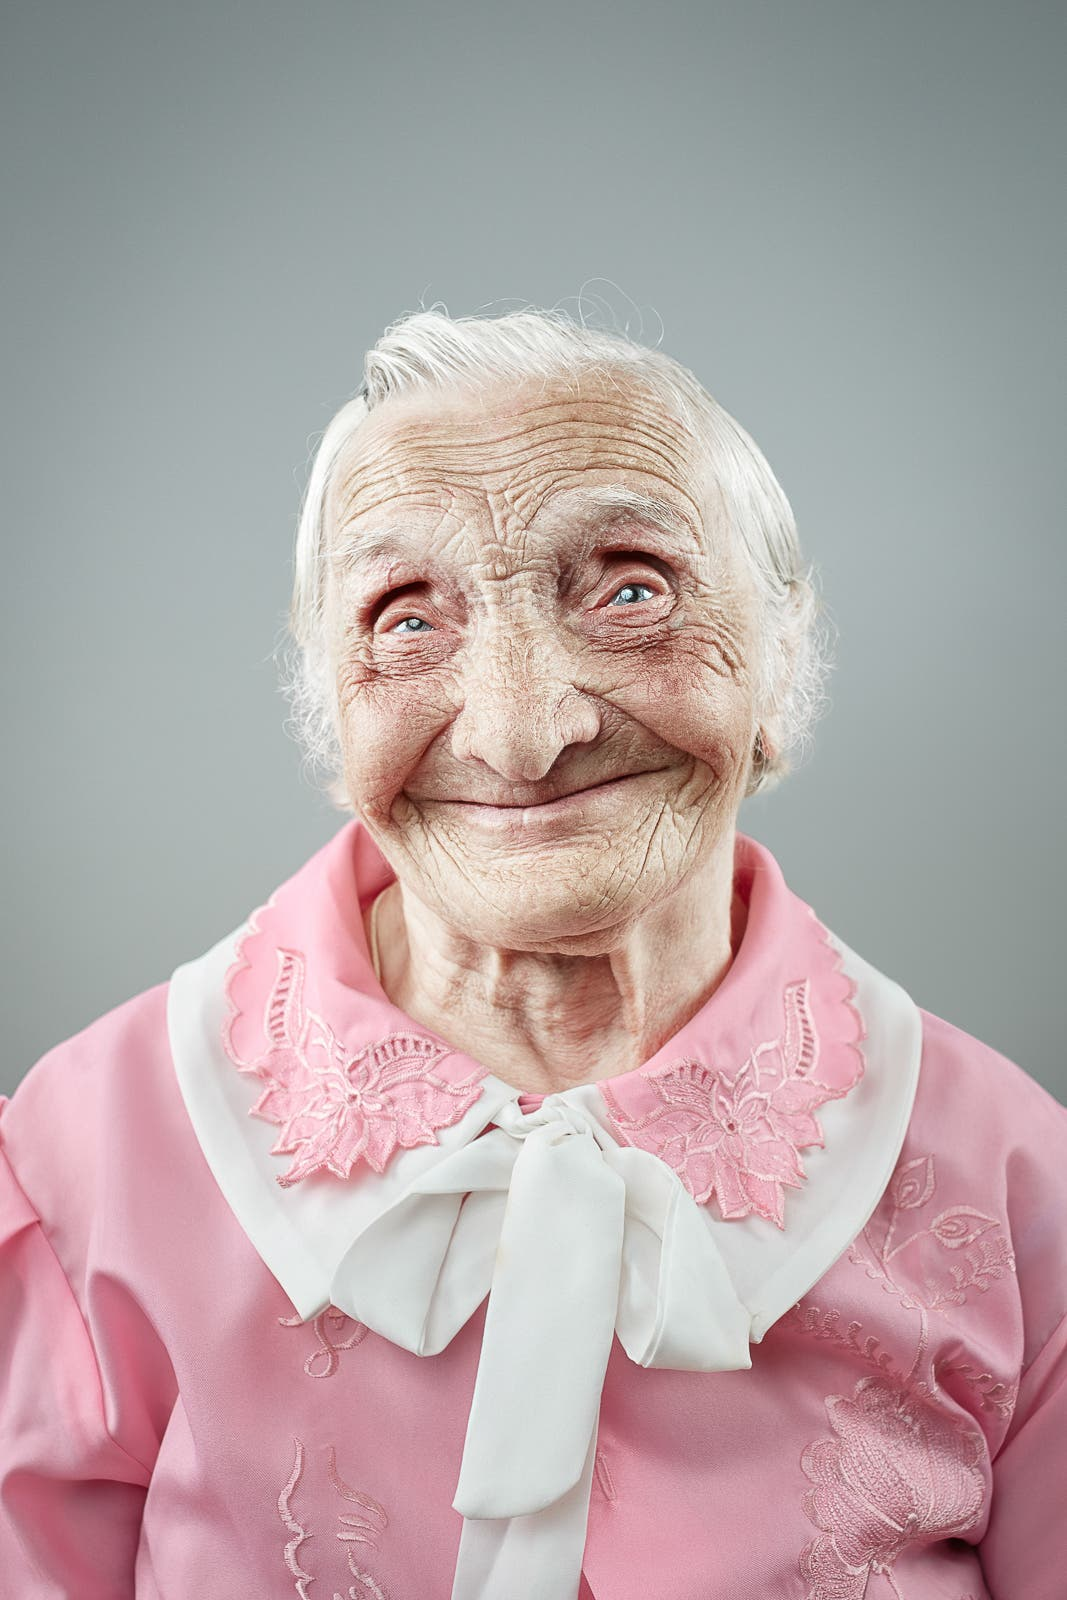 Charming Photo Series Showcases The Smiling Personas of the Elderly